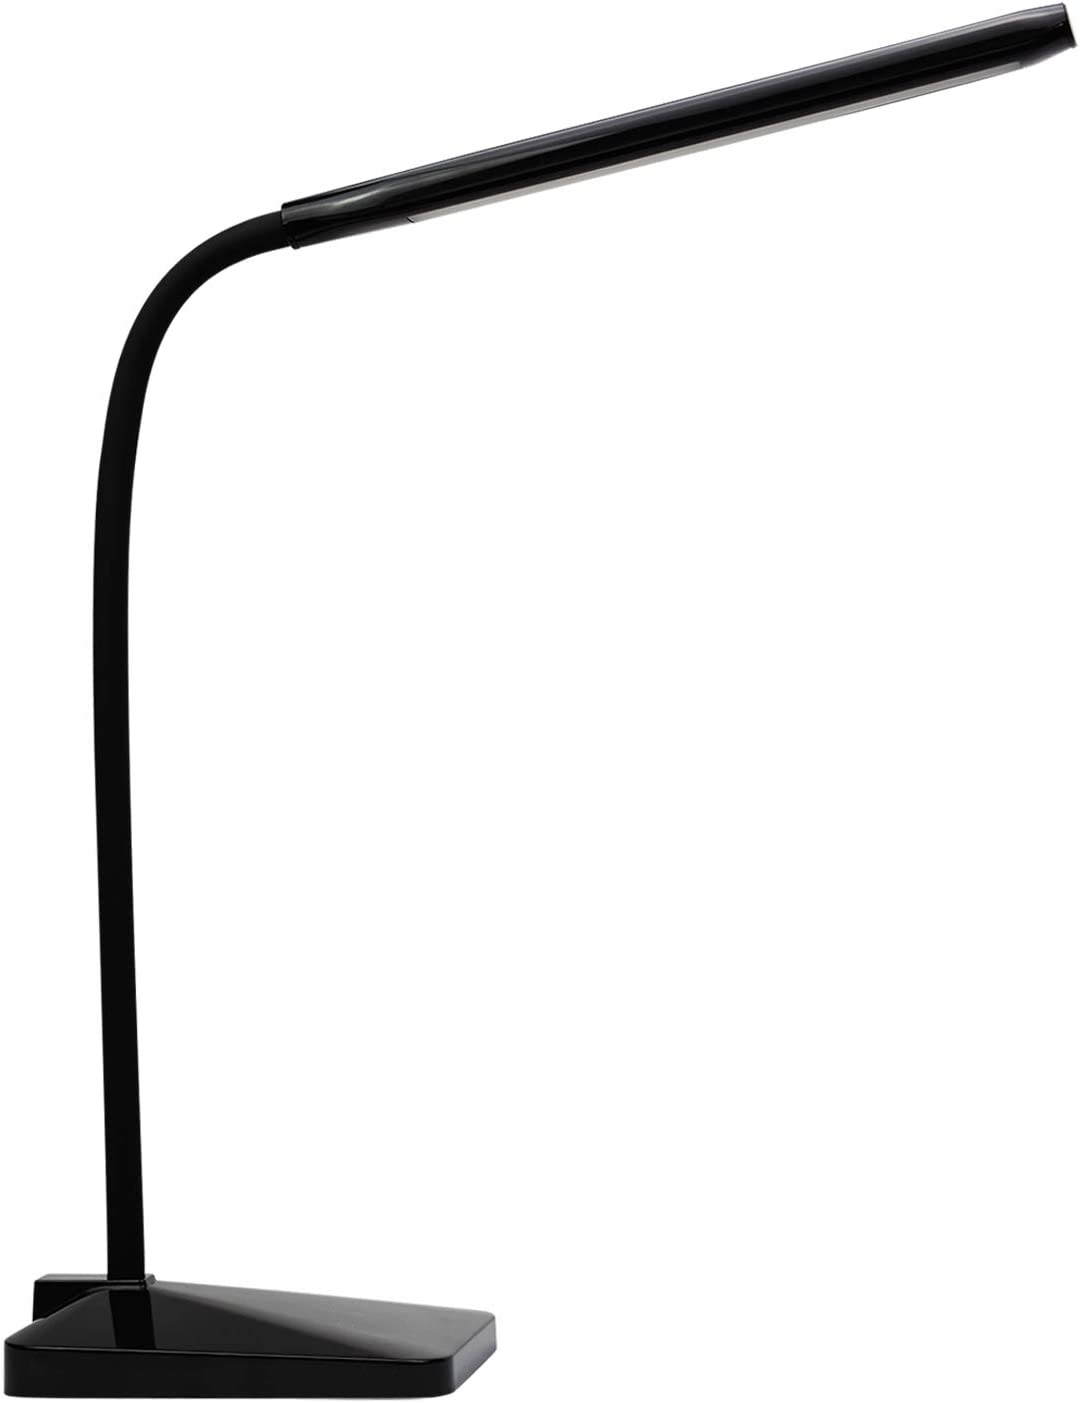 ANNAITE LED Desk Lamp with USB Charging Port Eye-Caring Dimmable Table Lamps 5 Lighting Modes with 5 Brightness Levels Touch Control Memory Function Gooseneck FCC Listed for Bedroom Office Black